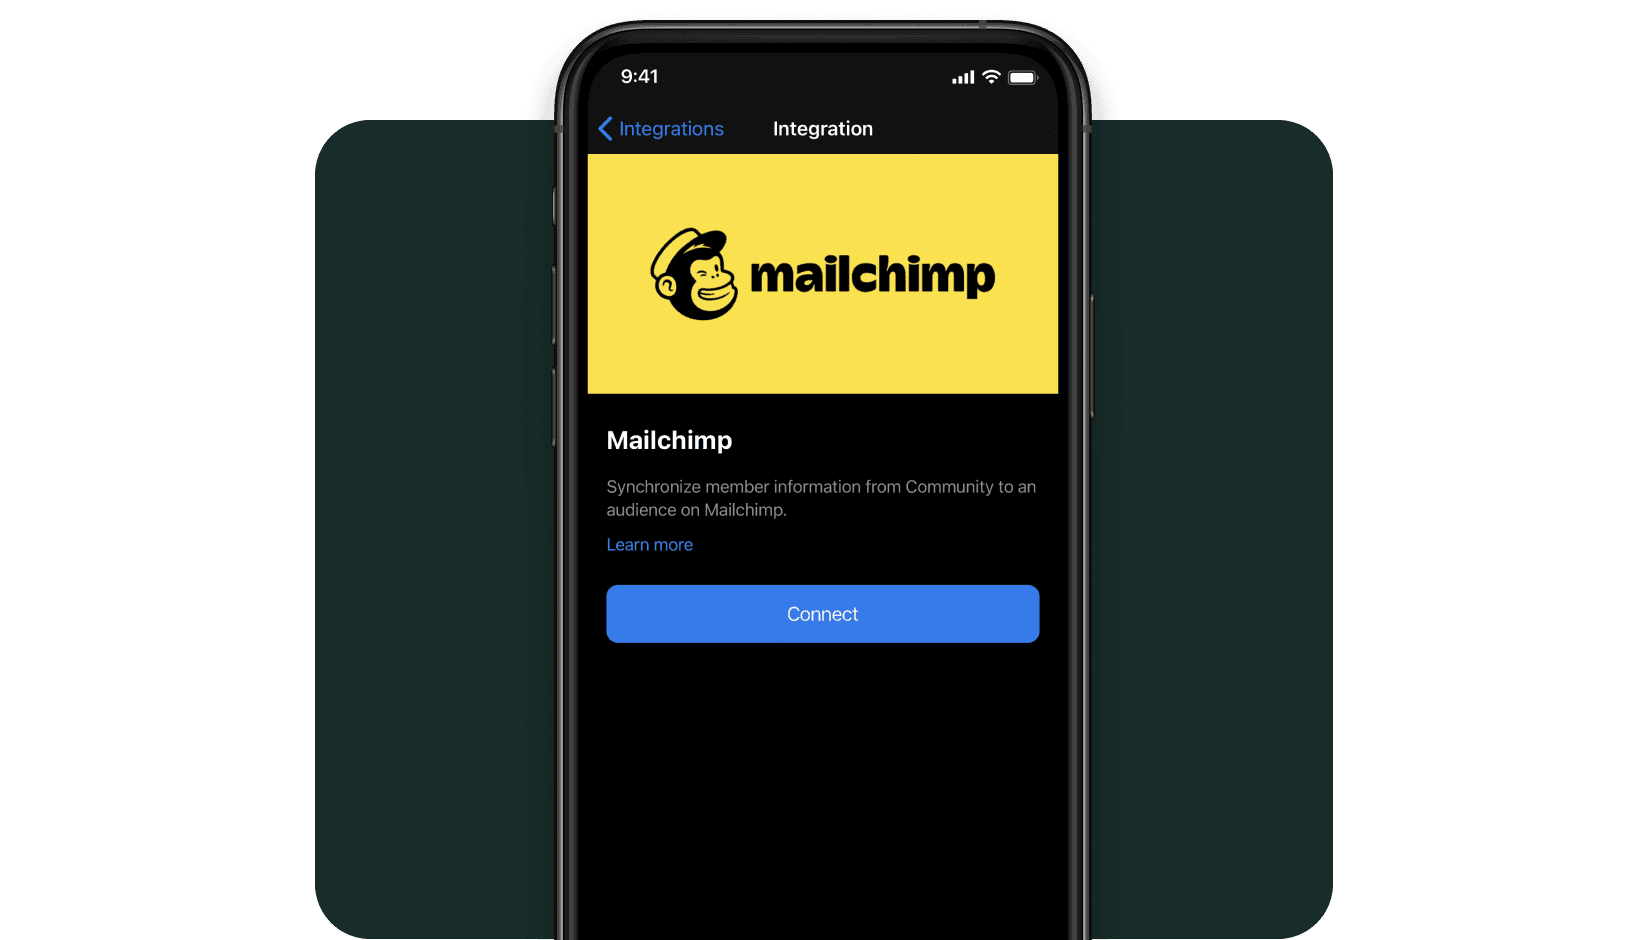 Mailchimp integration with andcards